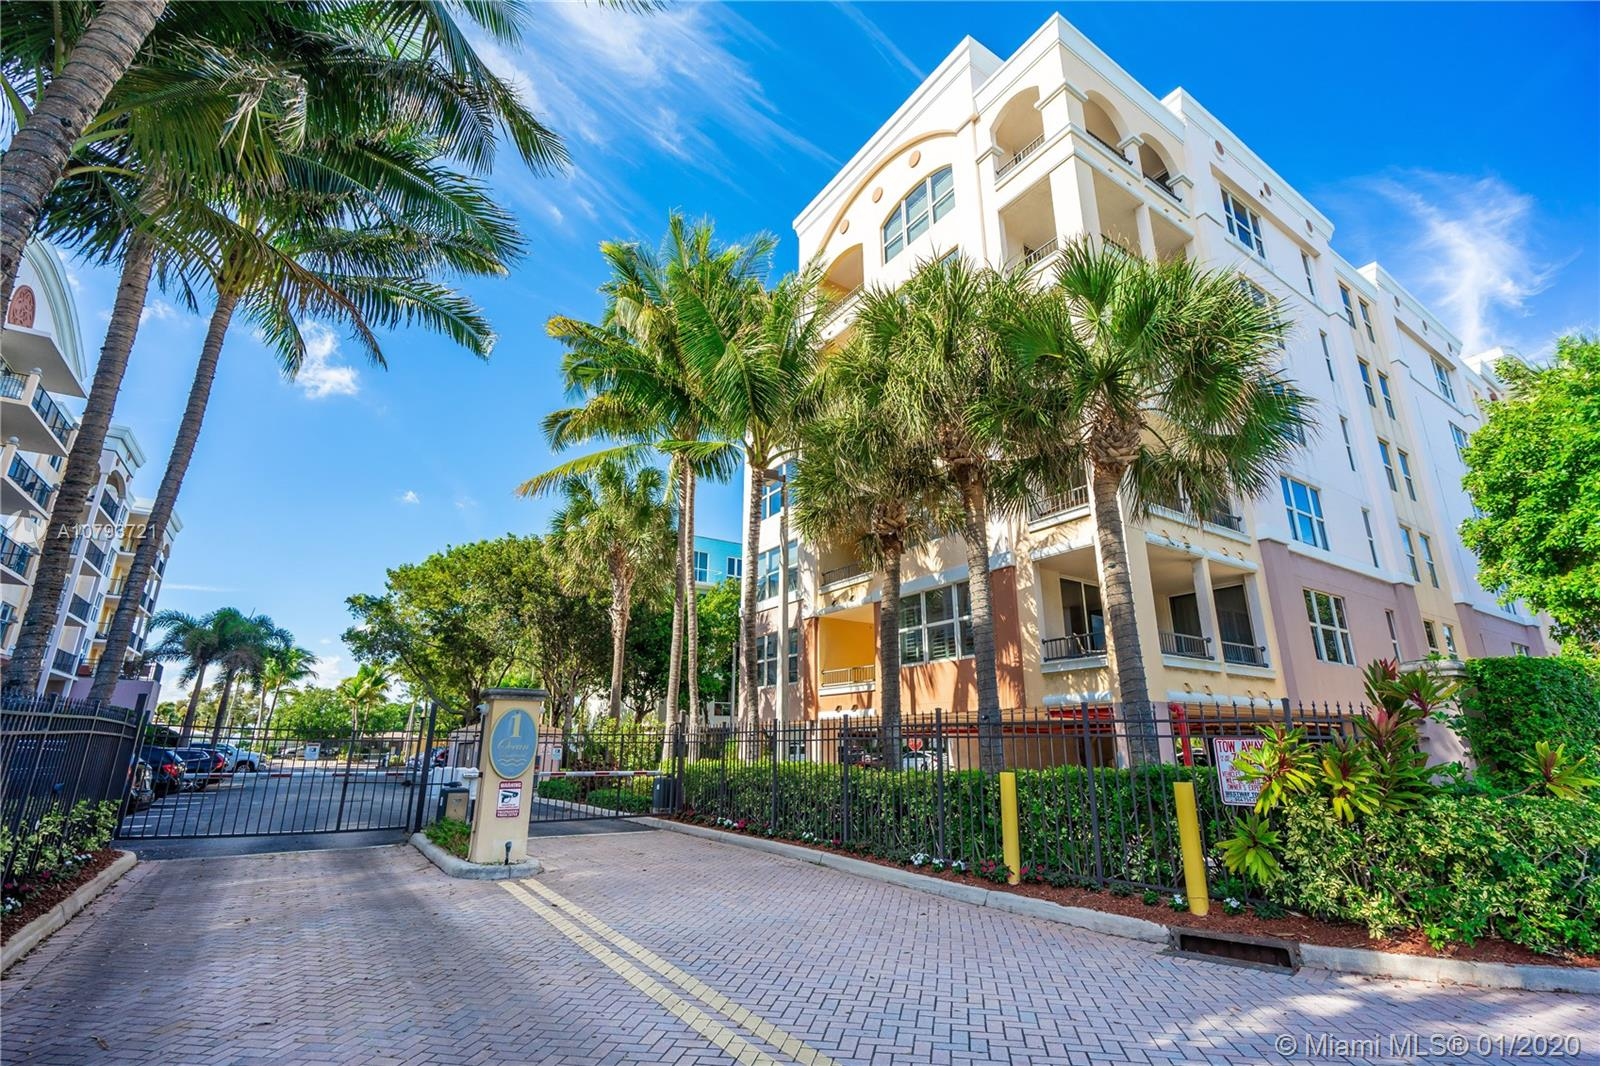 """Elegantly updated 2/2 with a possible den just steps to the ocean located in one of the most sought after buildings in Deerfield Beach. Open concept living with ocean views, 24"""" marble floors, upgraded kitchen with high end appliances and subway tile backsplash.  Spacious master suite with oversize bath, 2 sinks, vanity table large stand-up shower, whirlpool tub and private toilet room. This gated community offers an exercise room, pool, spa. BBQ area, car wash area, and on site management."""